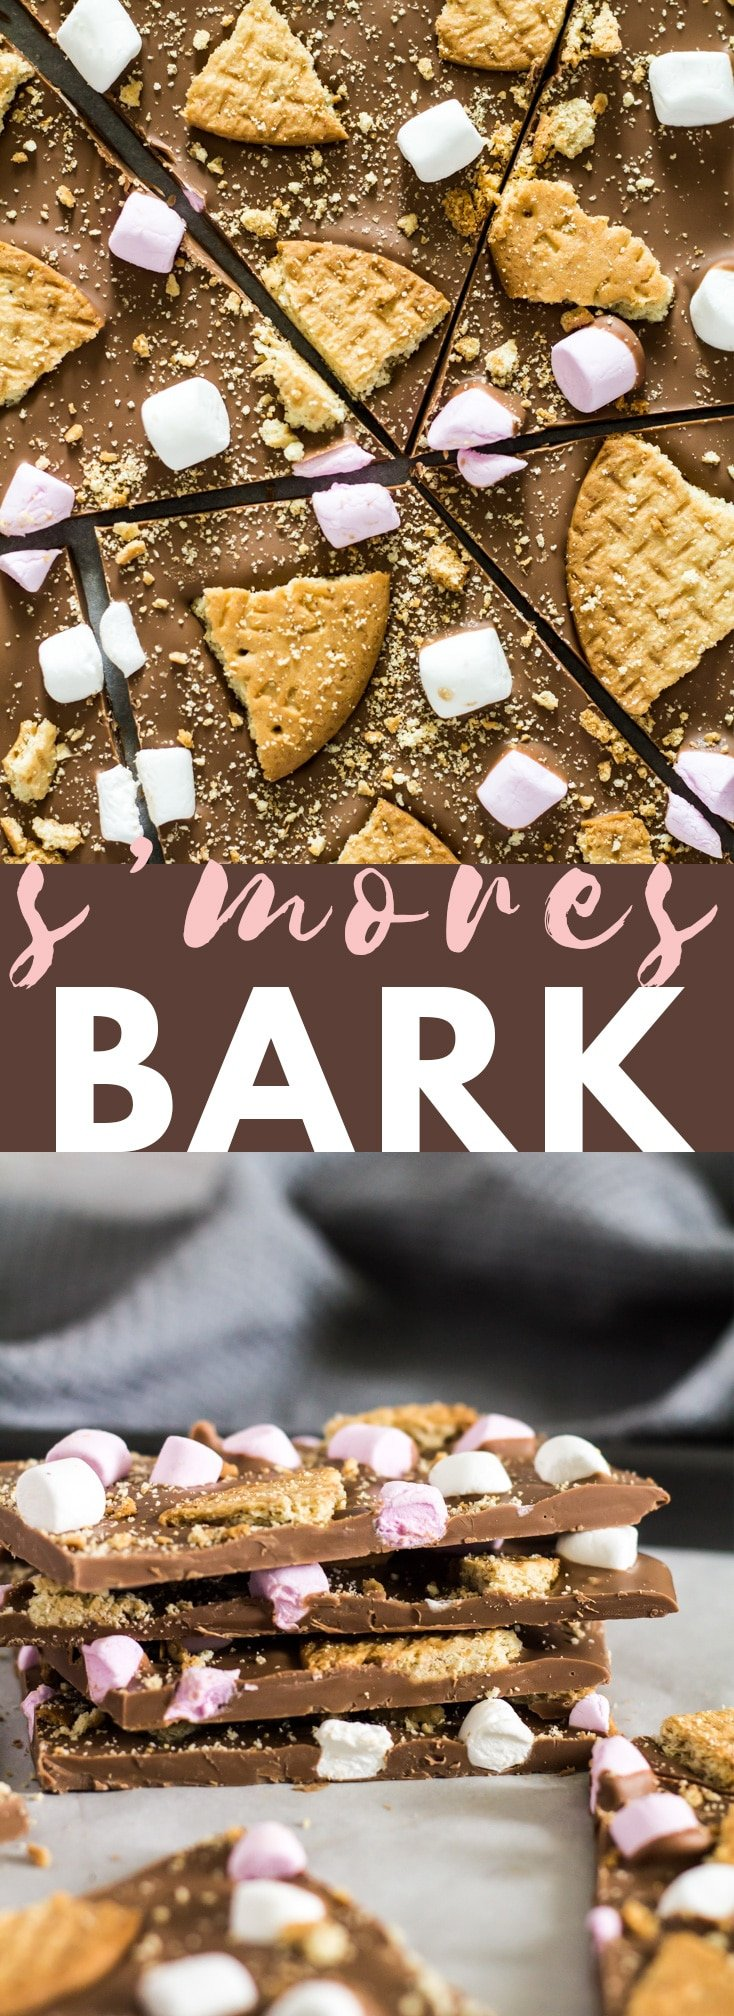 S'mores Chocolate Bark - A deliciously thick and creamy layer of milk chocolate that is generously topped with broken biscuits, and mini marshmallows! #chocolate #smores #nobake #recipe